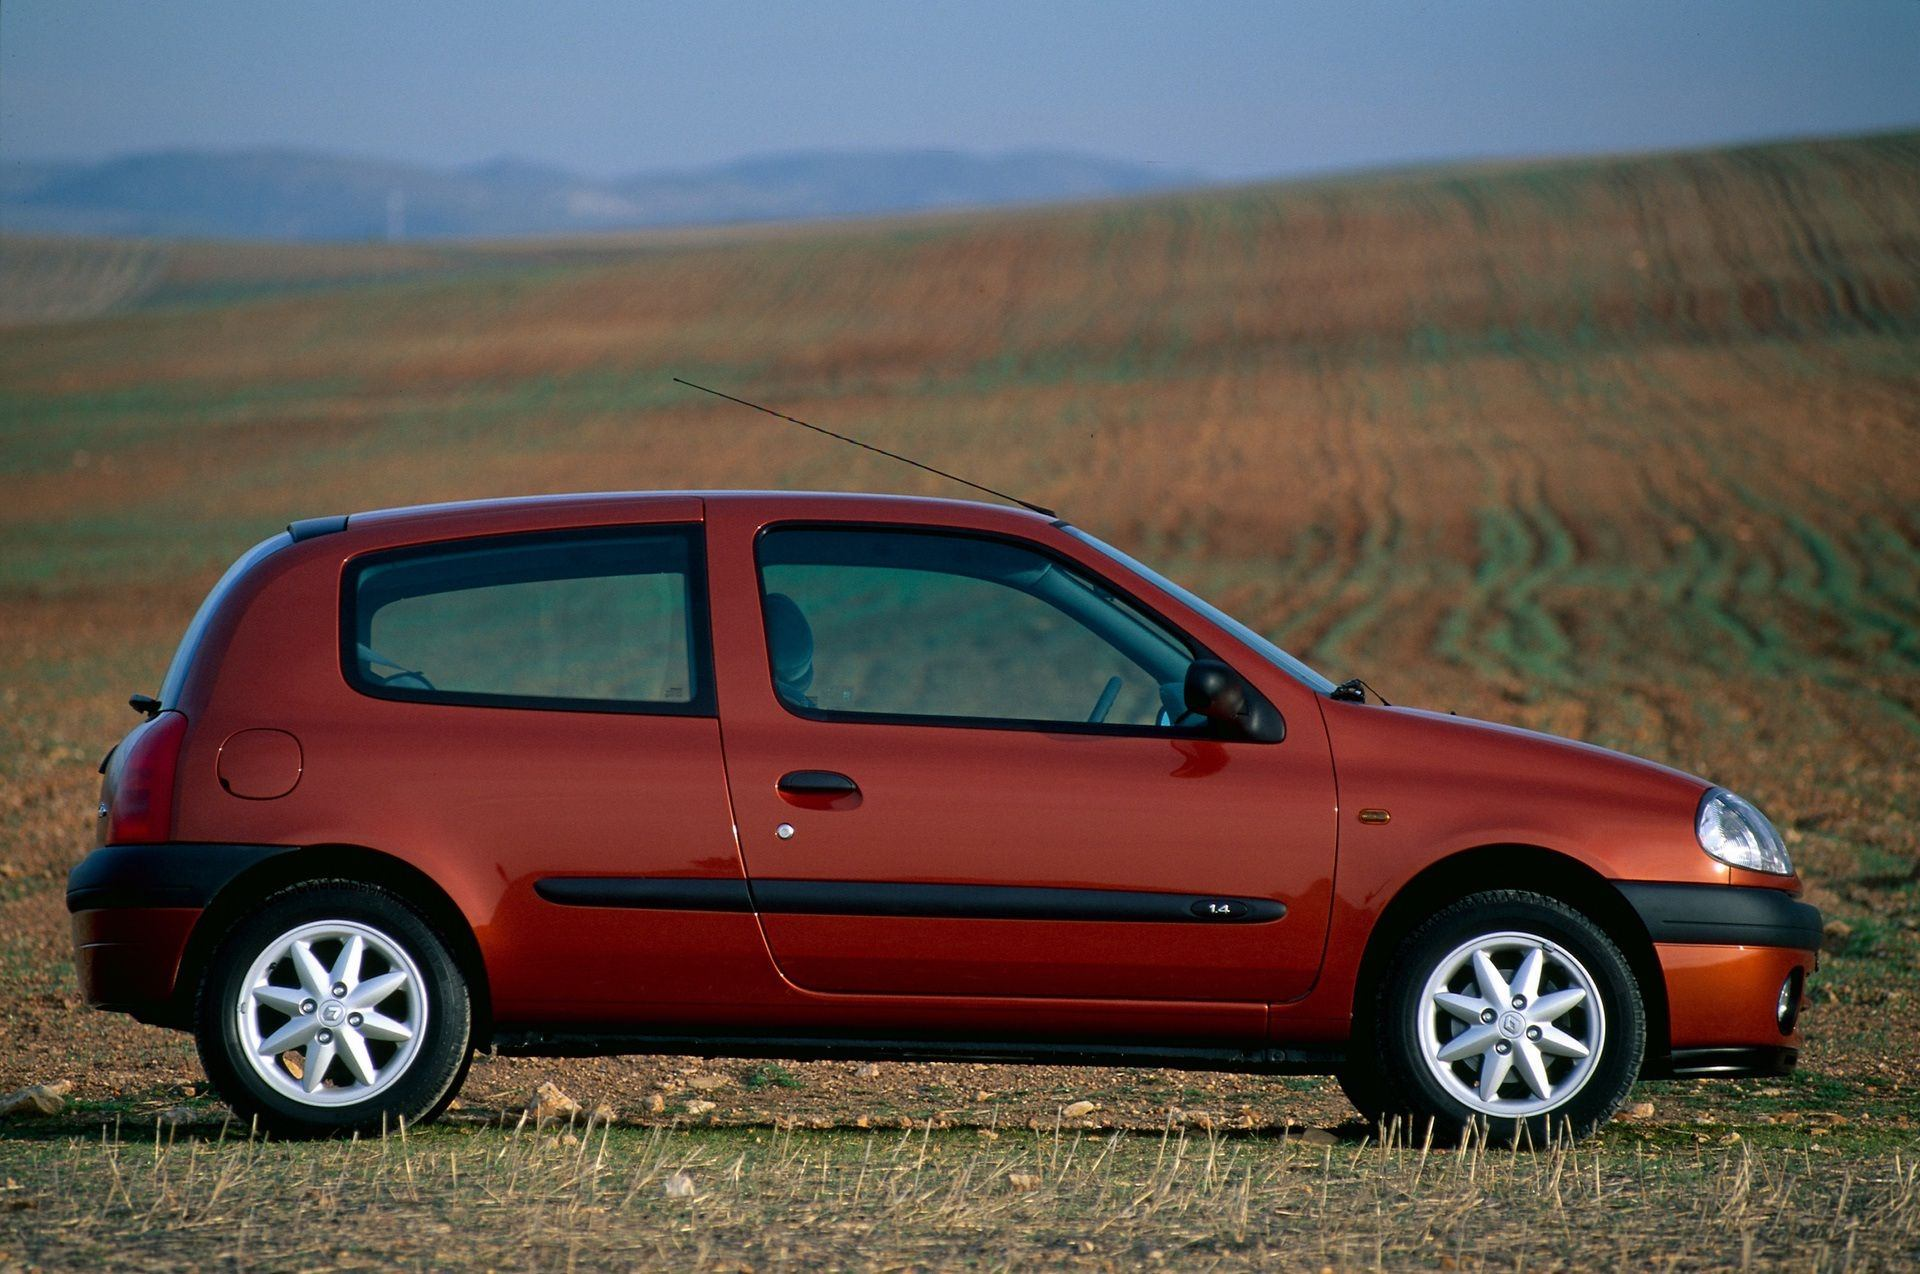 2020-30-years-of-Renault-CLIO-Renault-CLIO-2-1998-2005-2